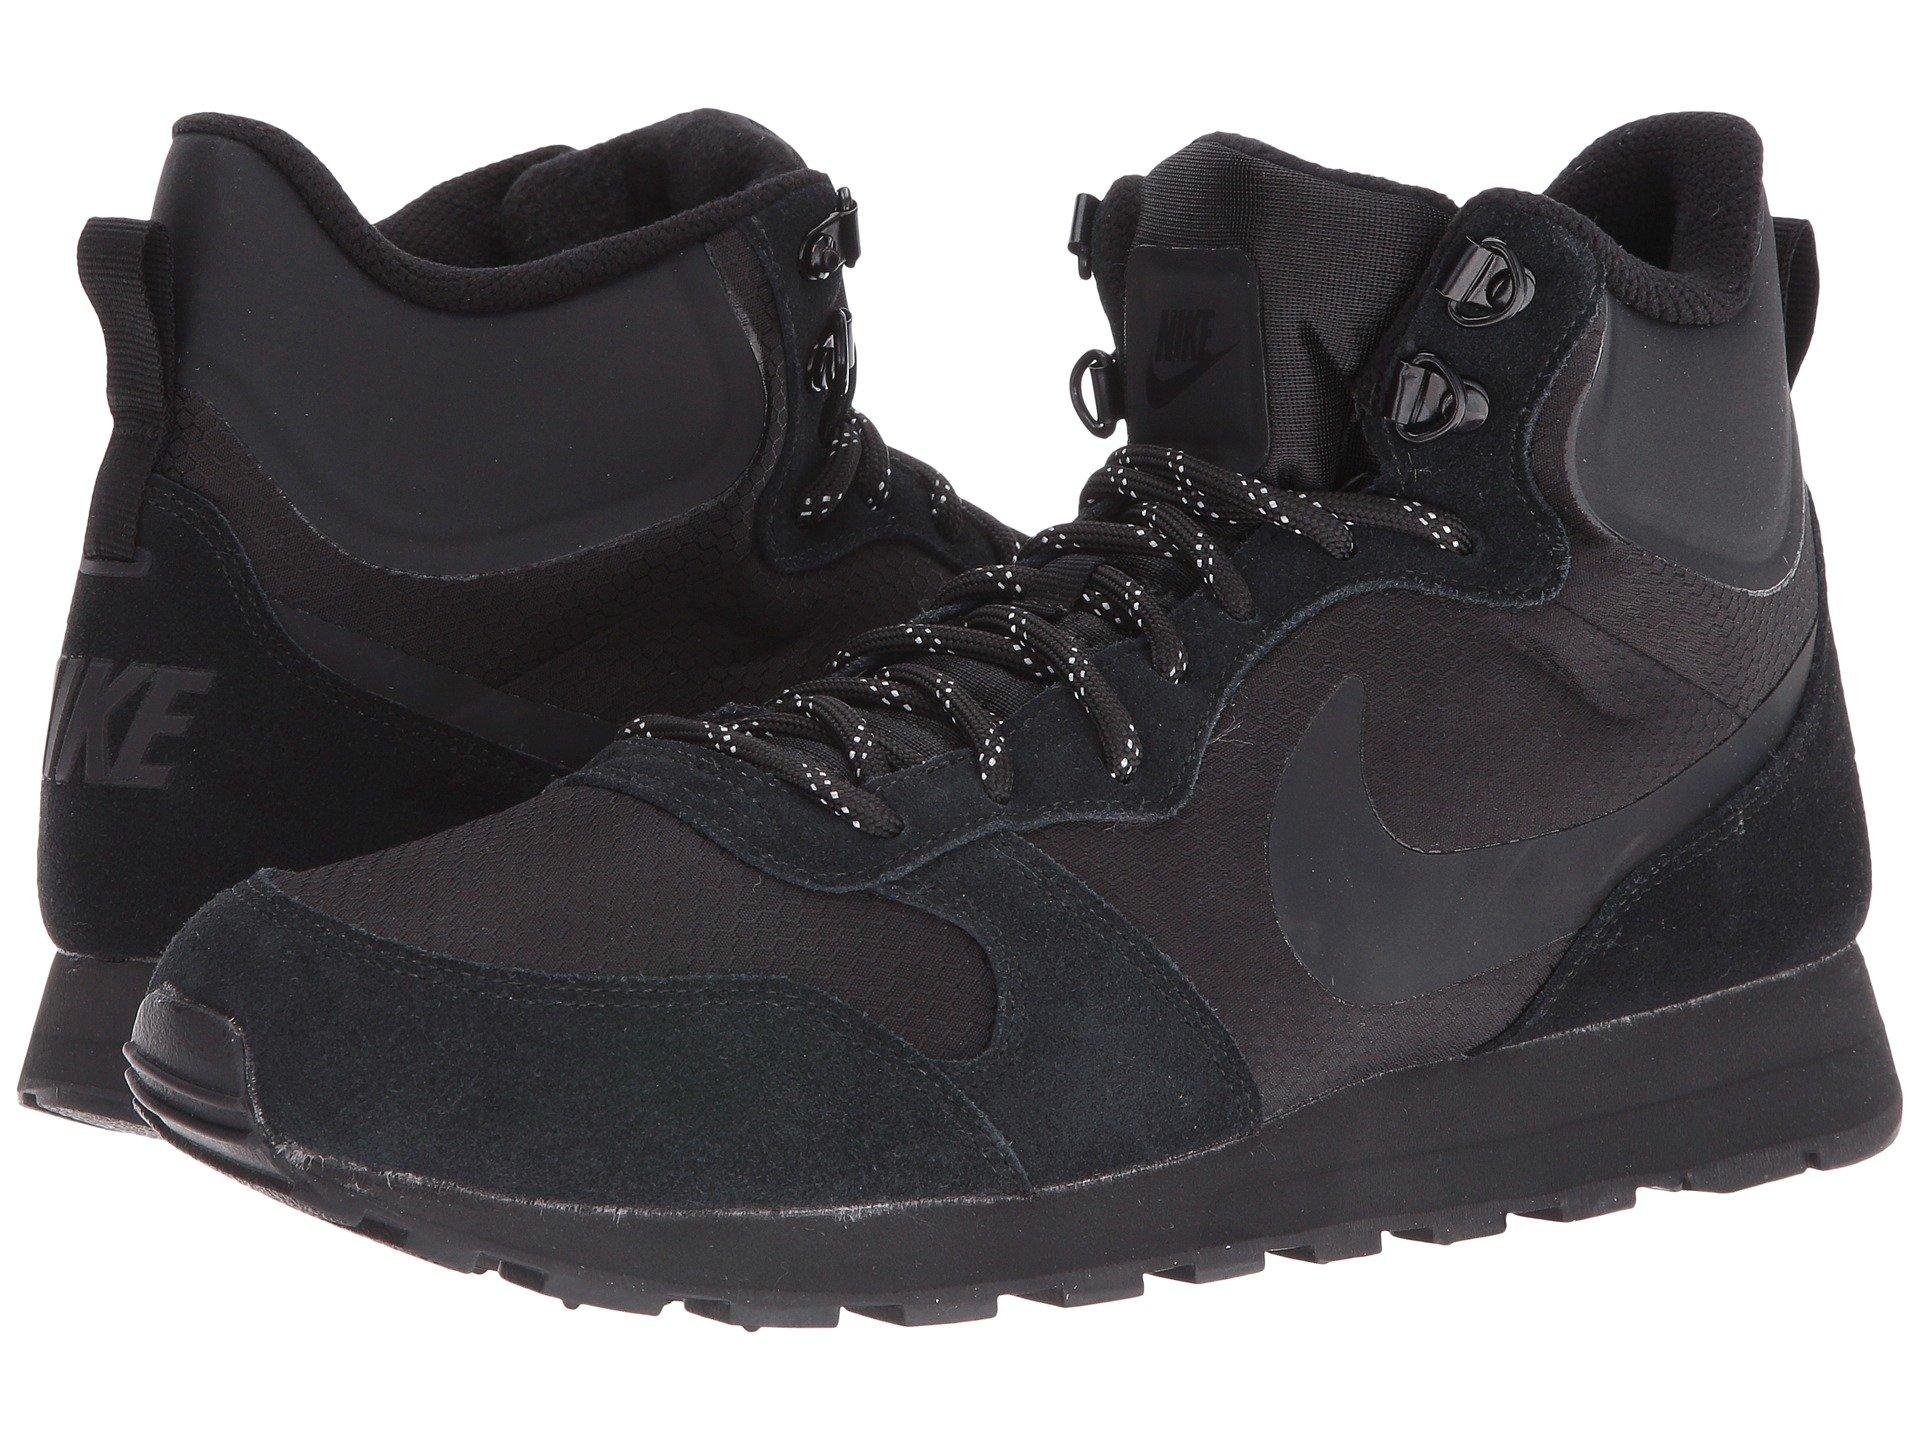 big sale d854d aec04 Nike Md Runner 2 Mid Premium, Black Black Black